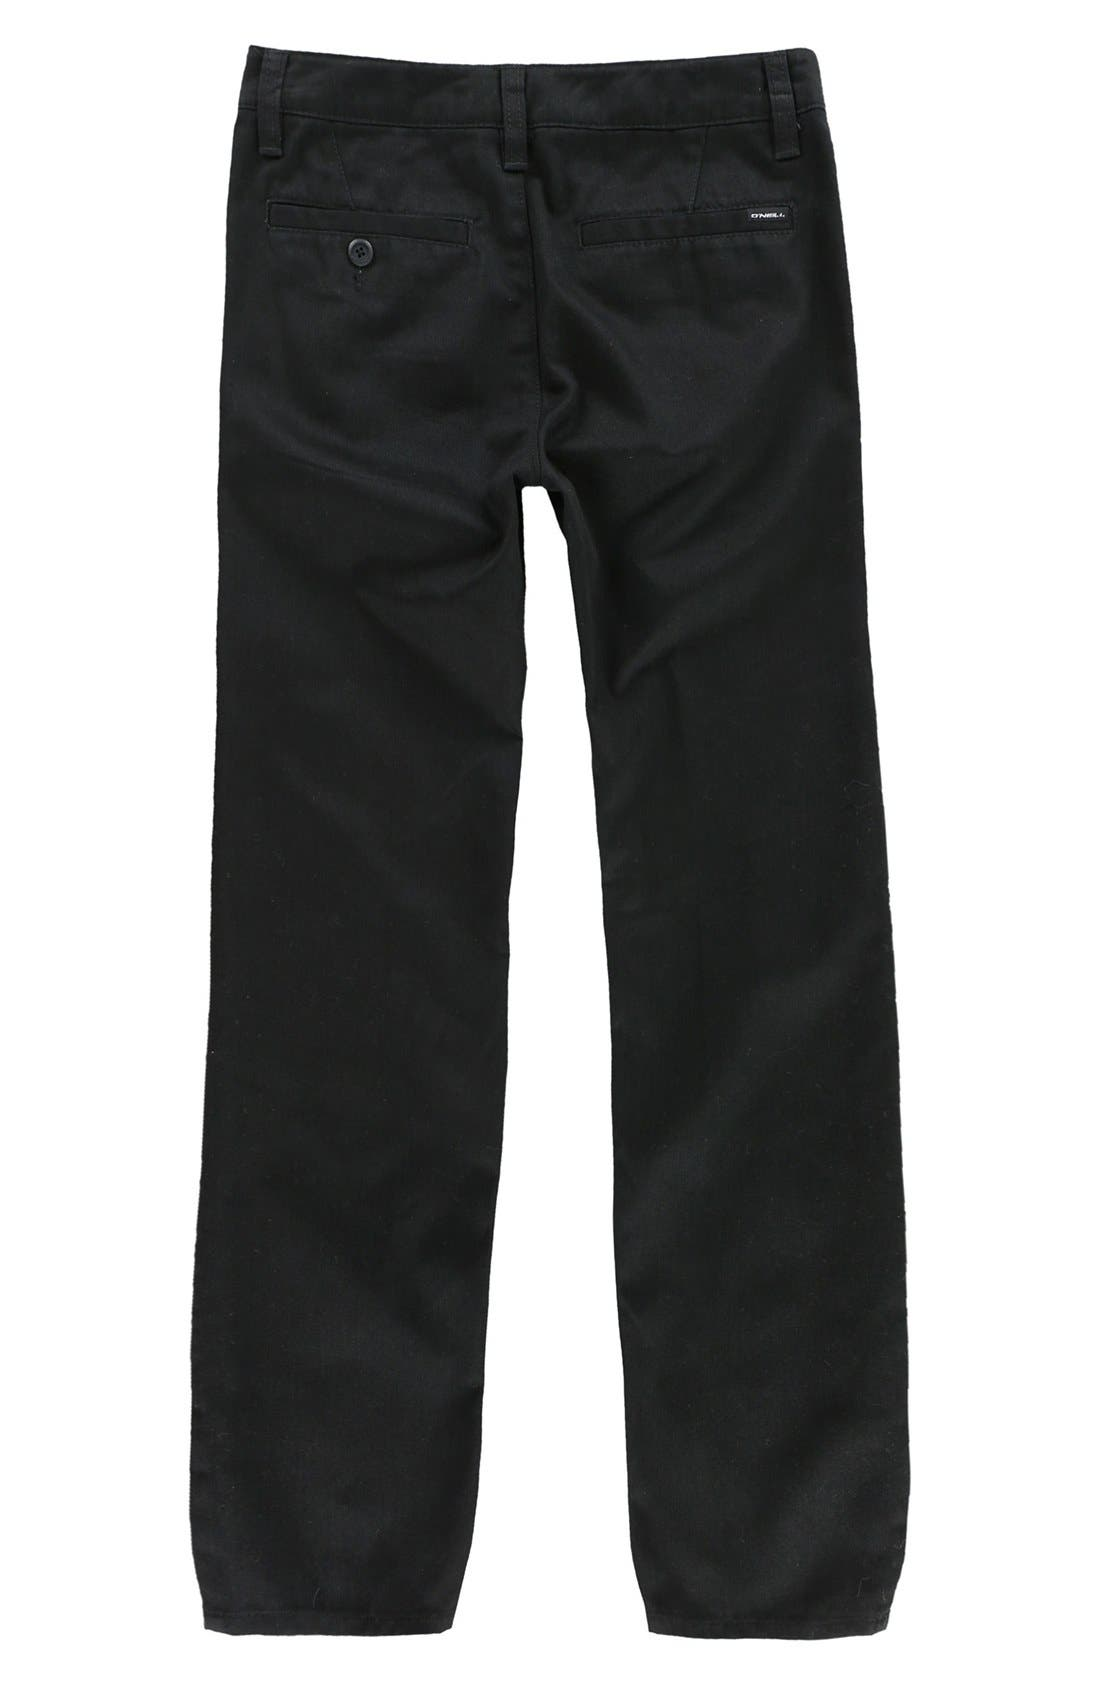 Alternate Image 2  - O'Neill Contact Straight Leg Twill Pants (Toddler Boys)